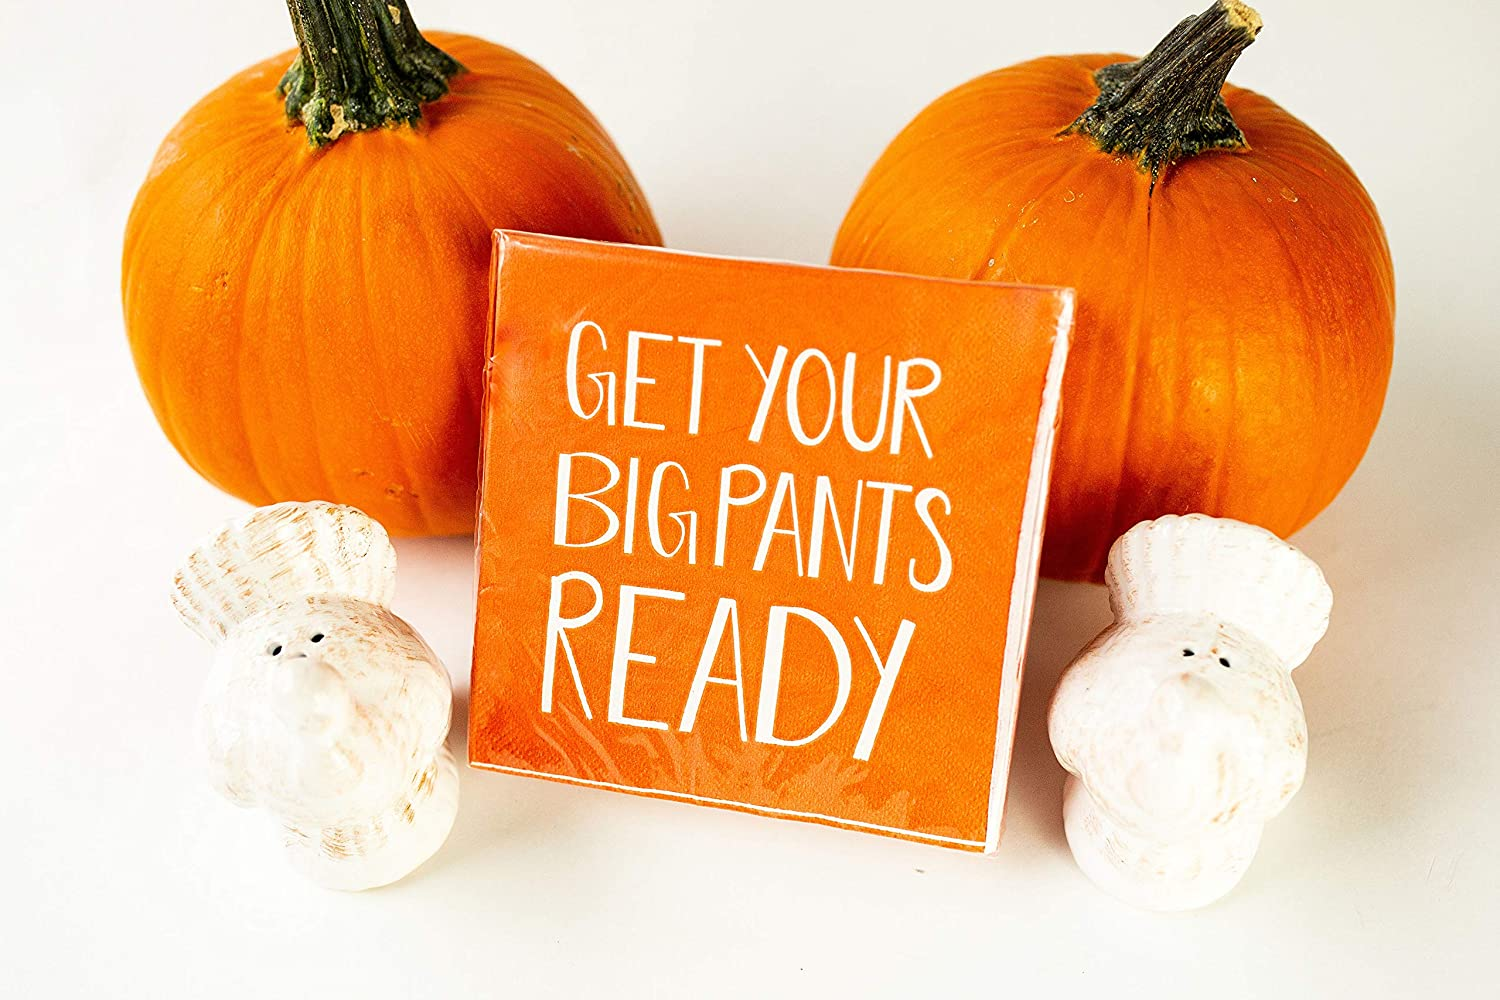 Turkey Salt /& Pepper Shakers with Get Your Big Pants Ready Table Napkins